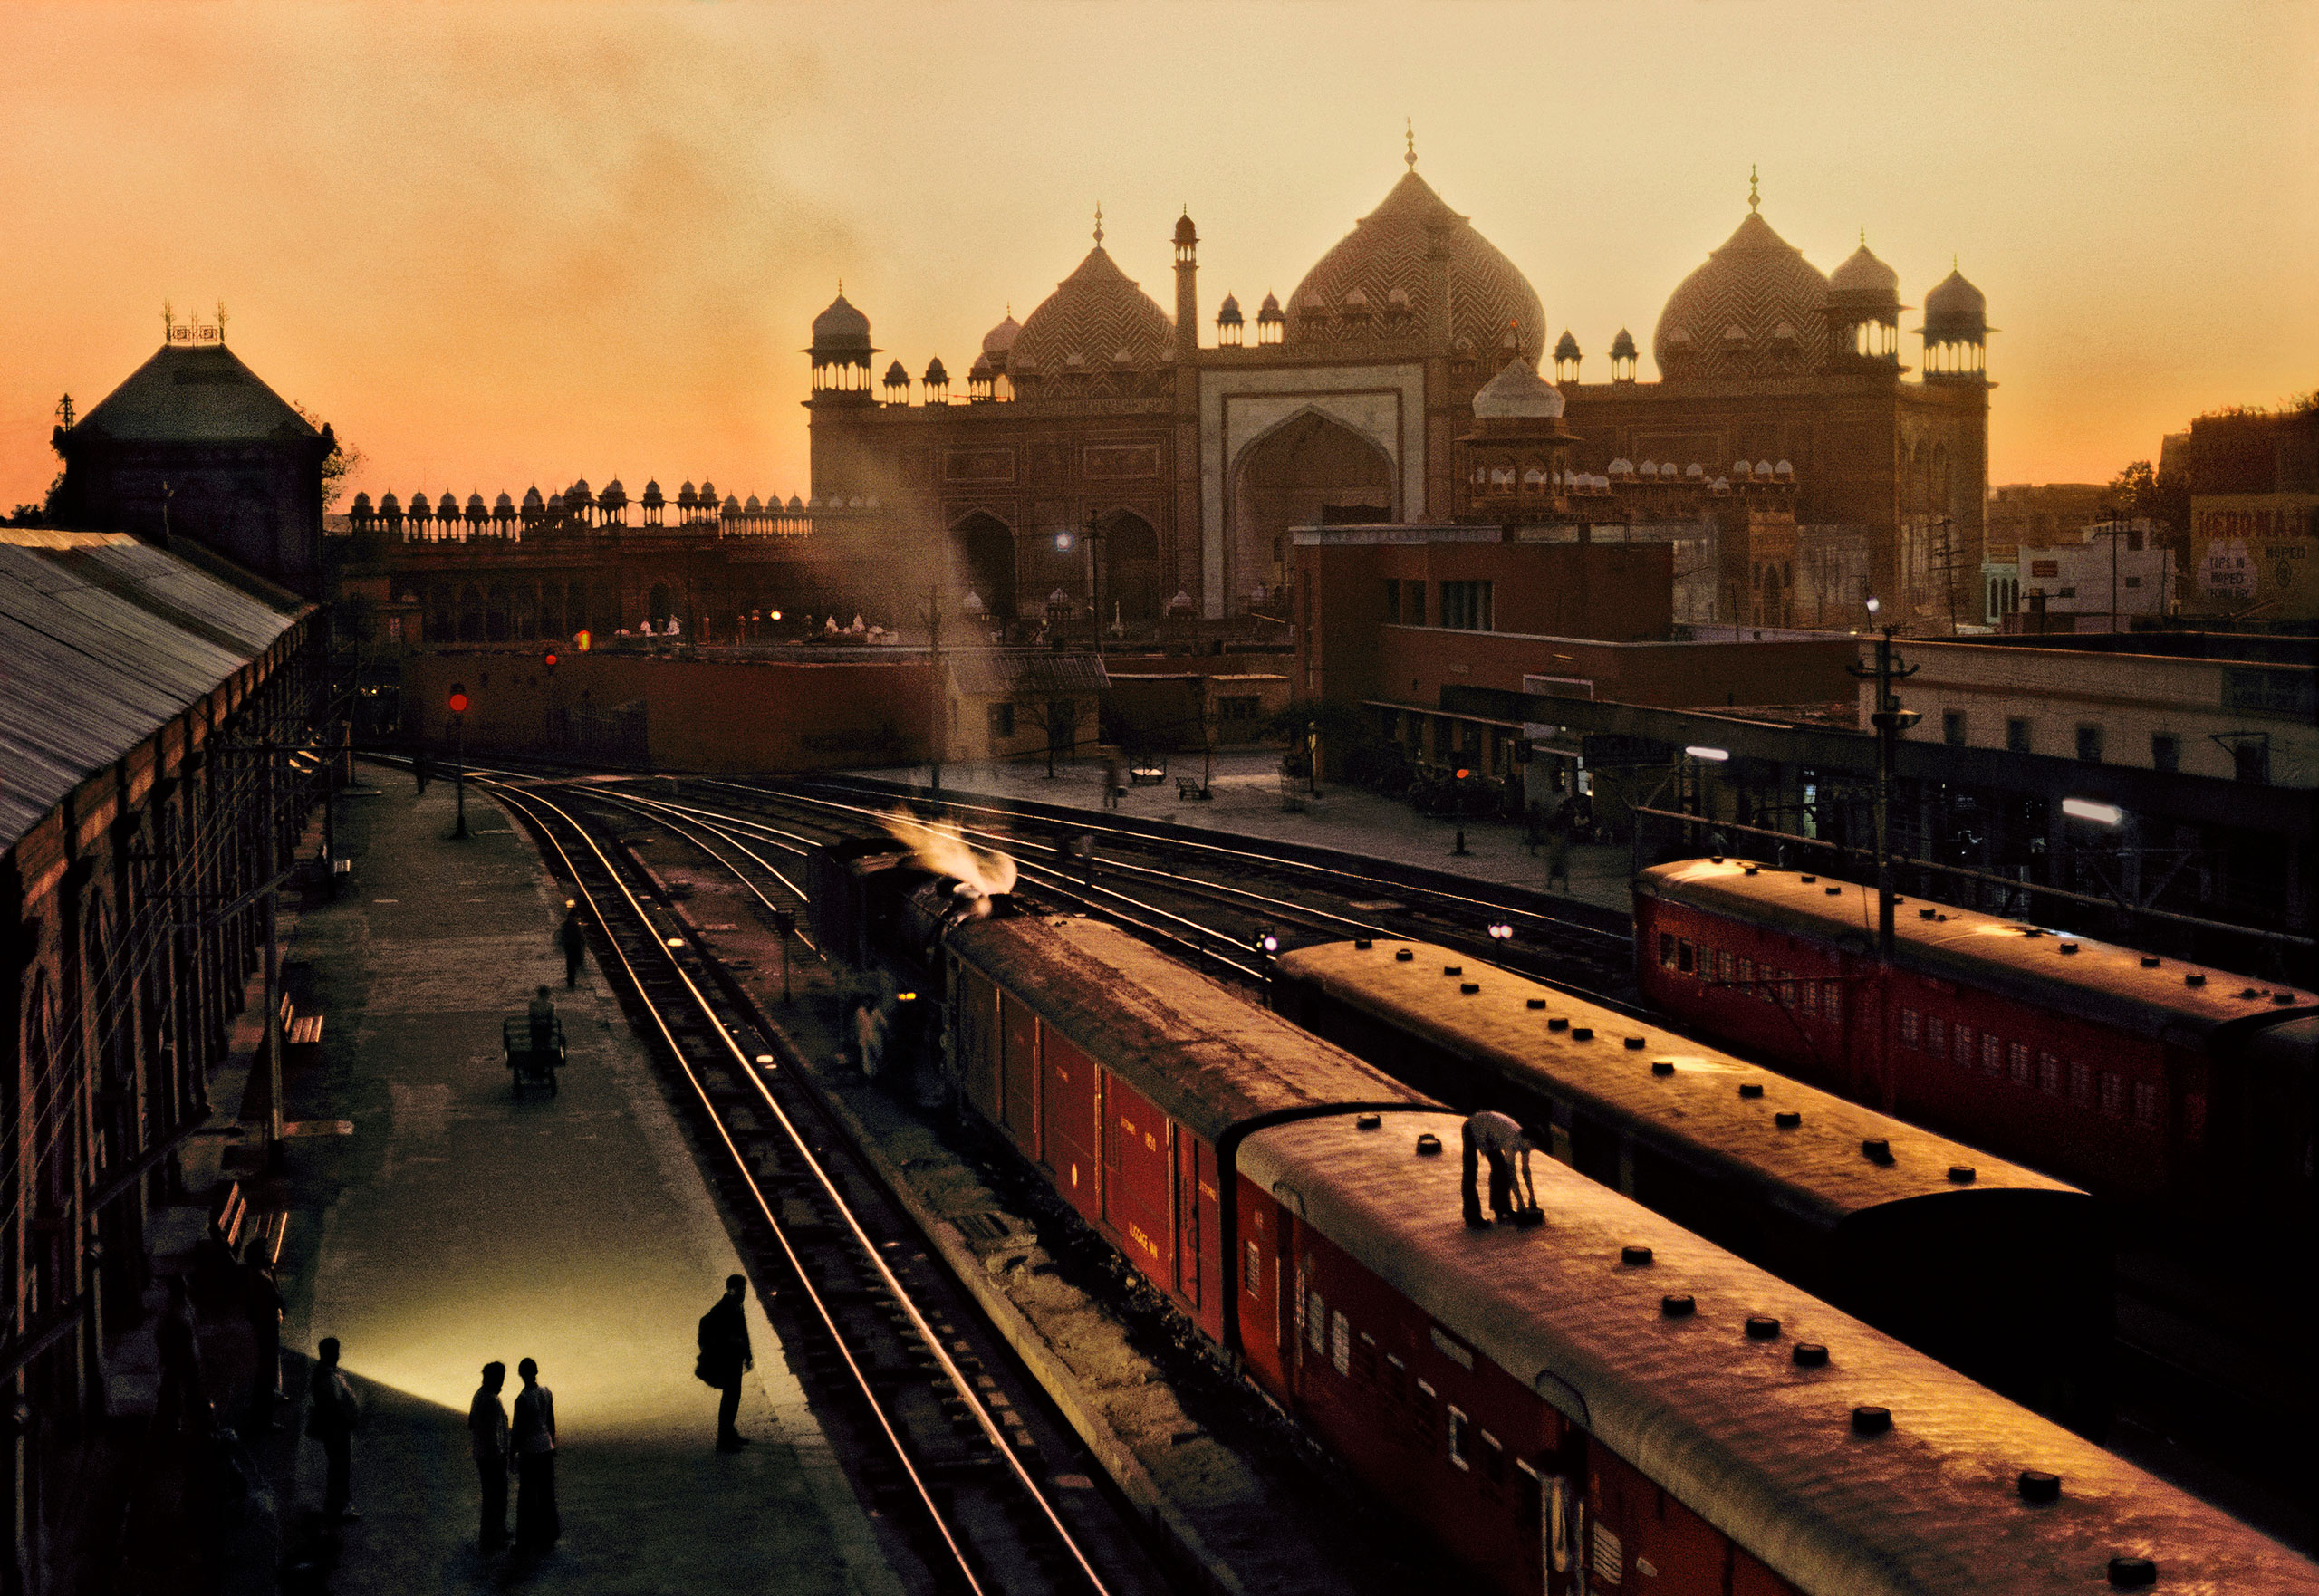 Agra Fort train station at dusk, with the Jama Masjid, the great mosque of Shah Jahan, in the distance.                               Agra, Uttar Pradesh, 1983